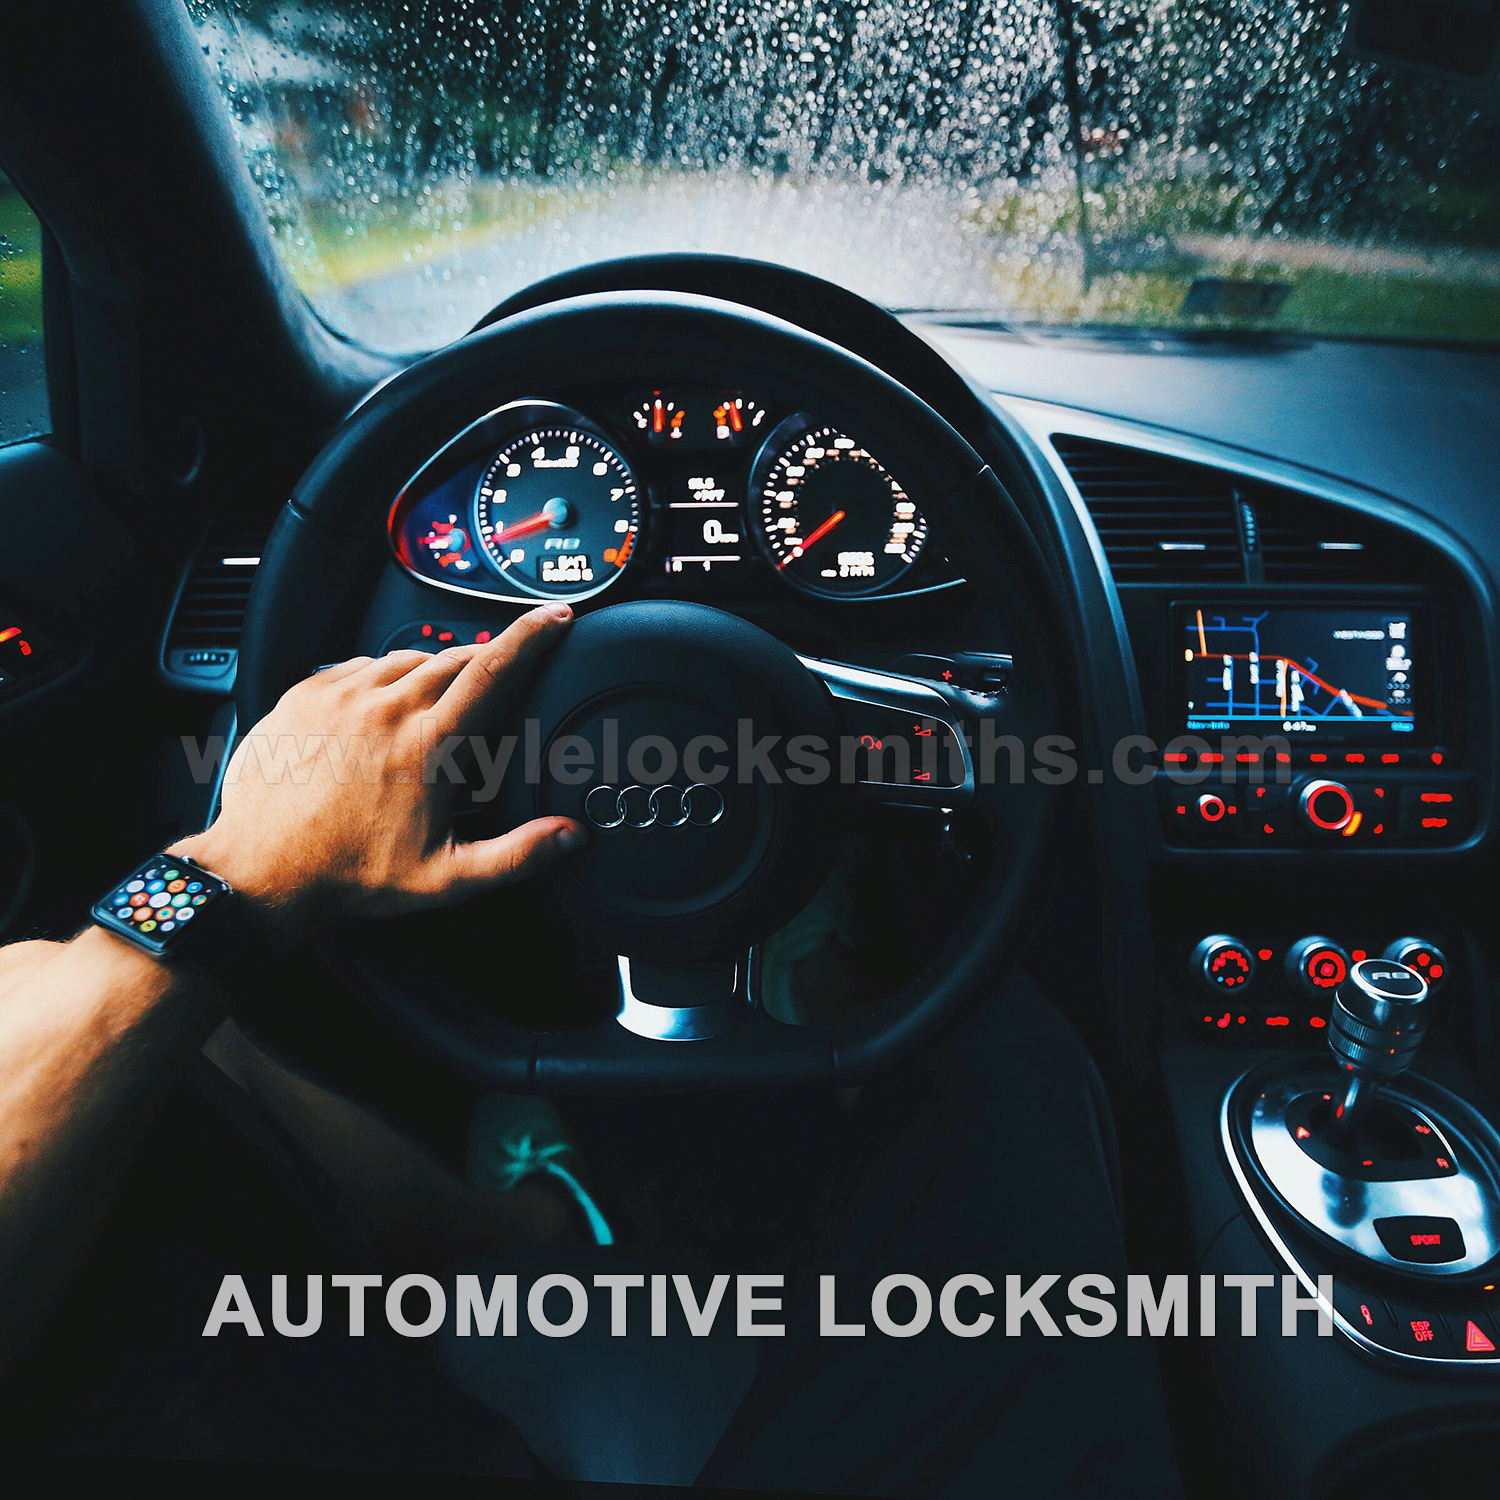 kyle-locksmith-automotive